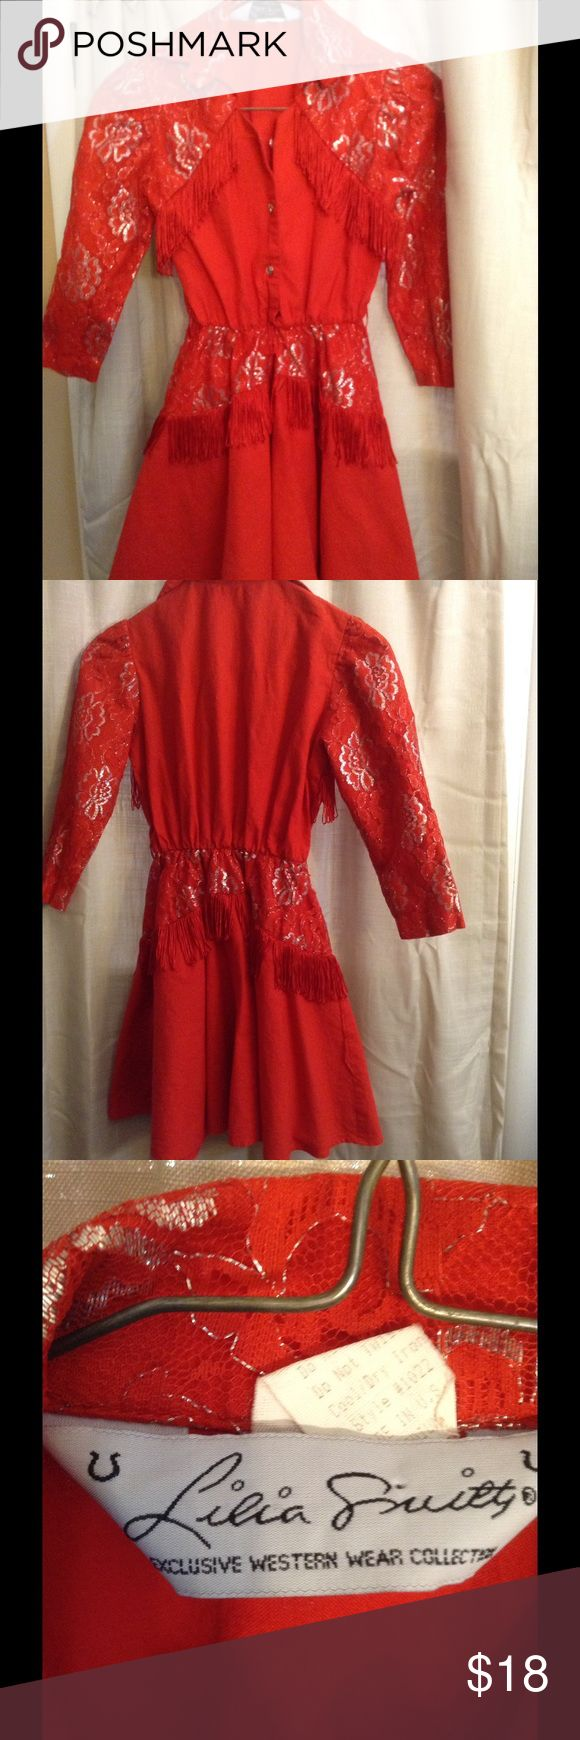 Authentic girl's western wear dress and hat. Vintage Lilia Smitty girl's dress.  Beautiful fringe and lace trim.  Approximately 3 little stains on skirt that are hardly noticeable. Lilia Smitty Dresses Casual